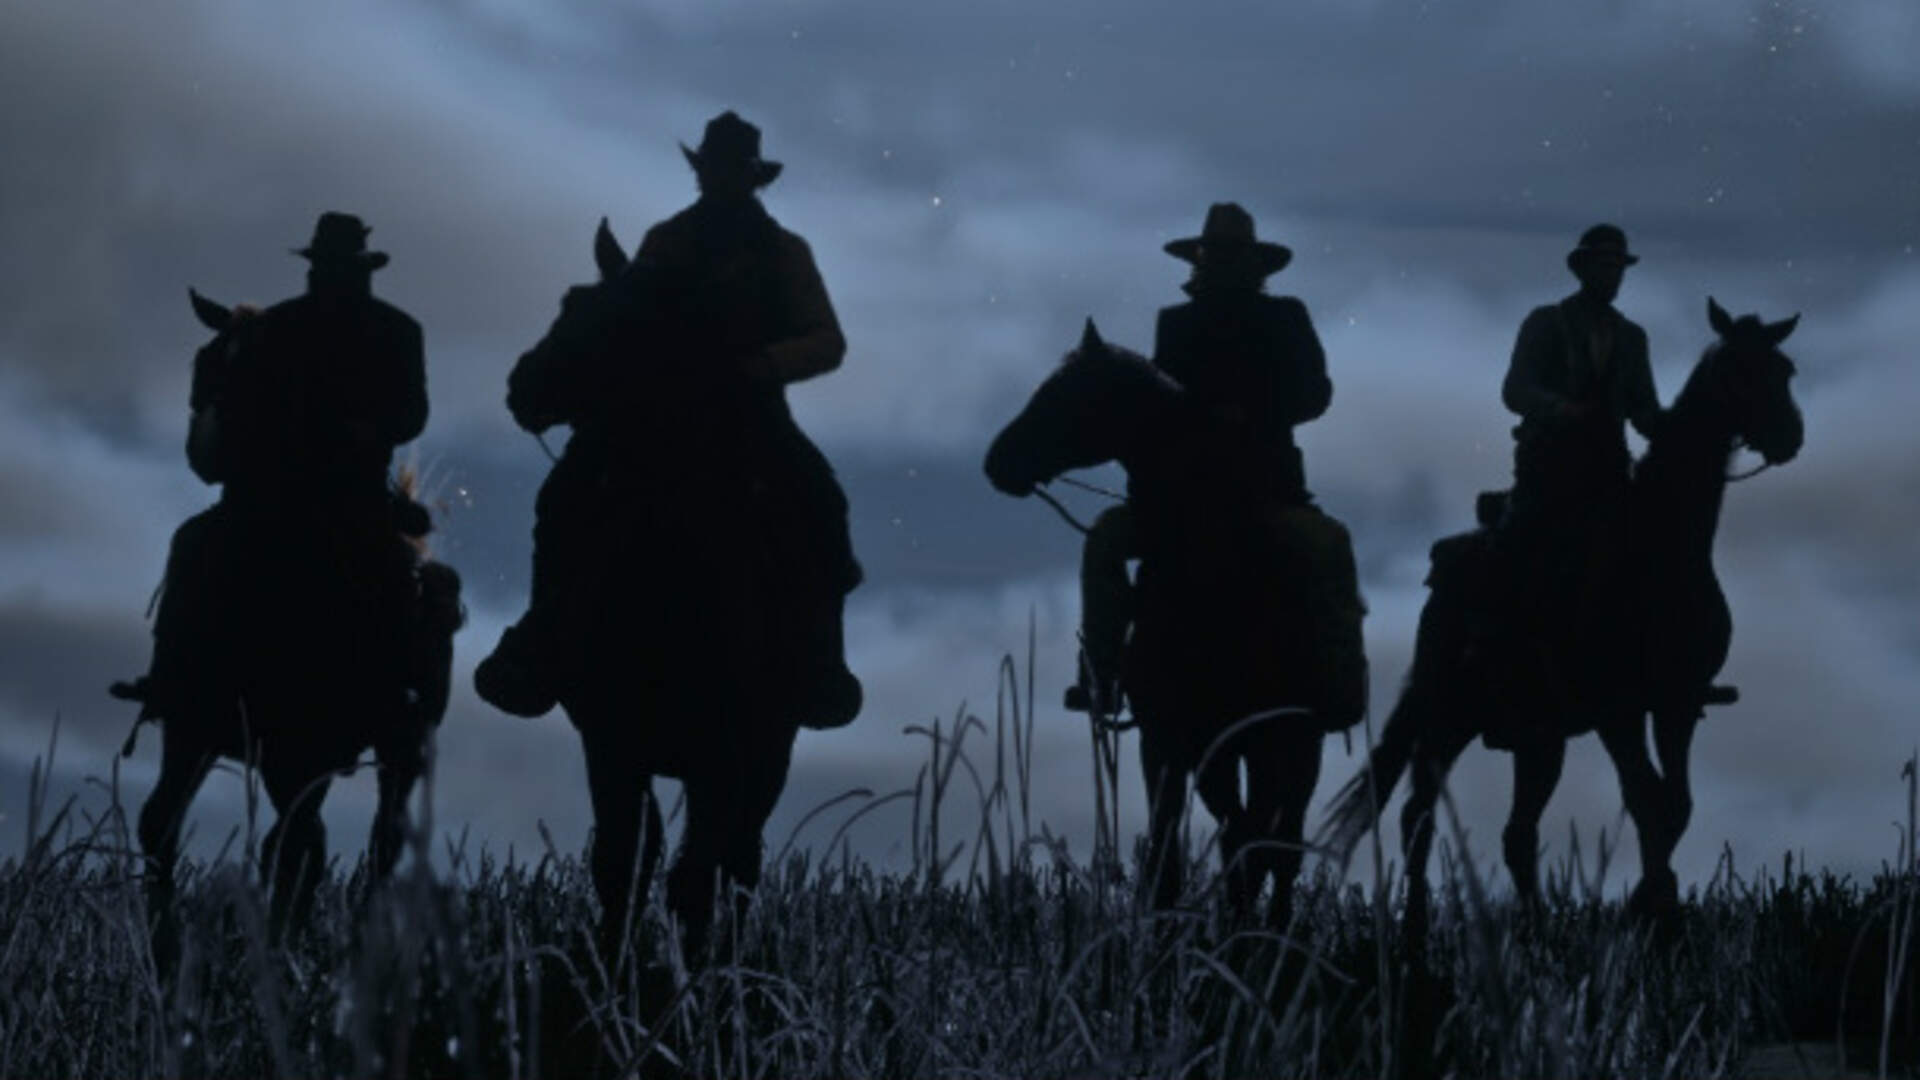 The Most Harrowing Tales of Working at Rockstar Games From Today's Latest Reports